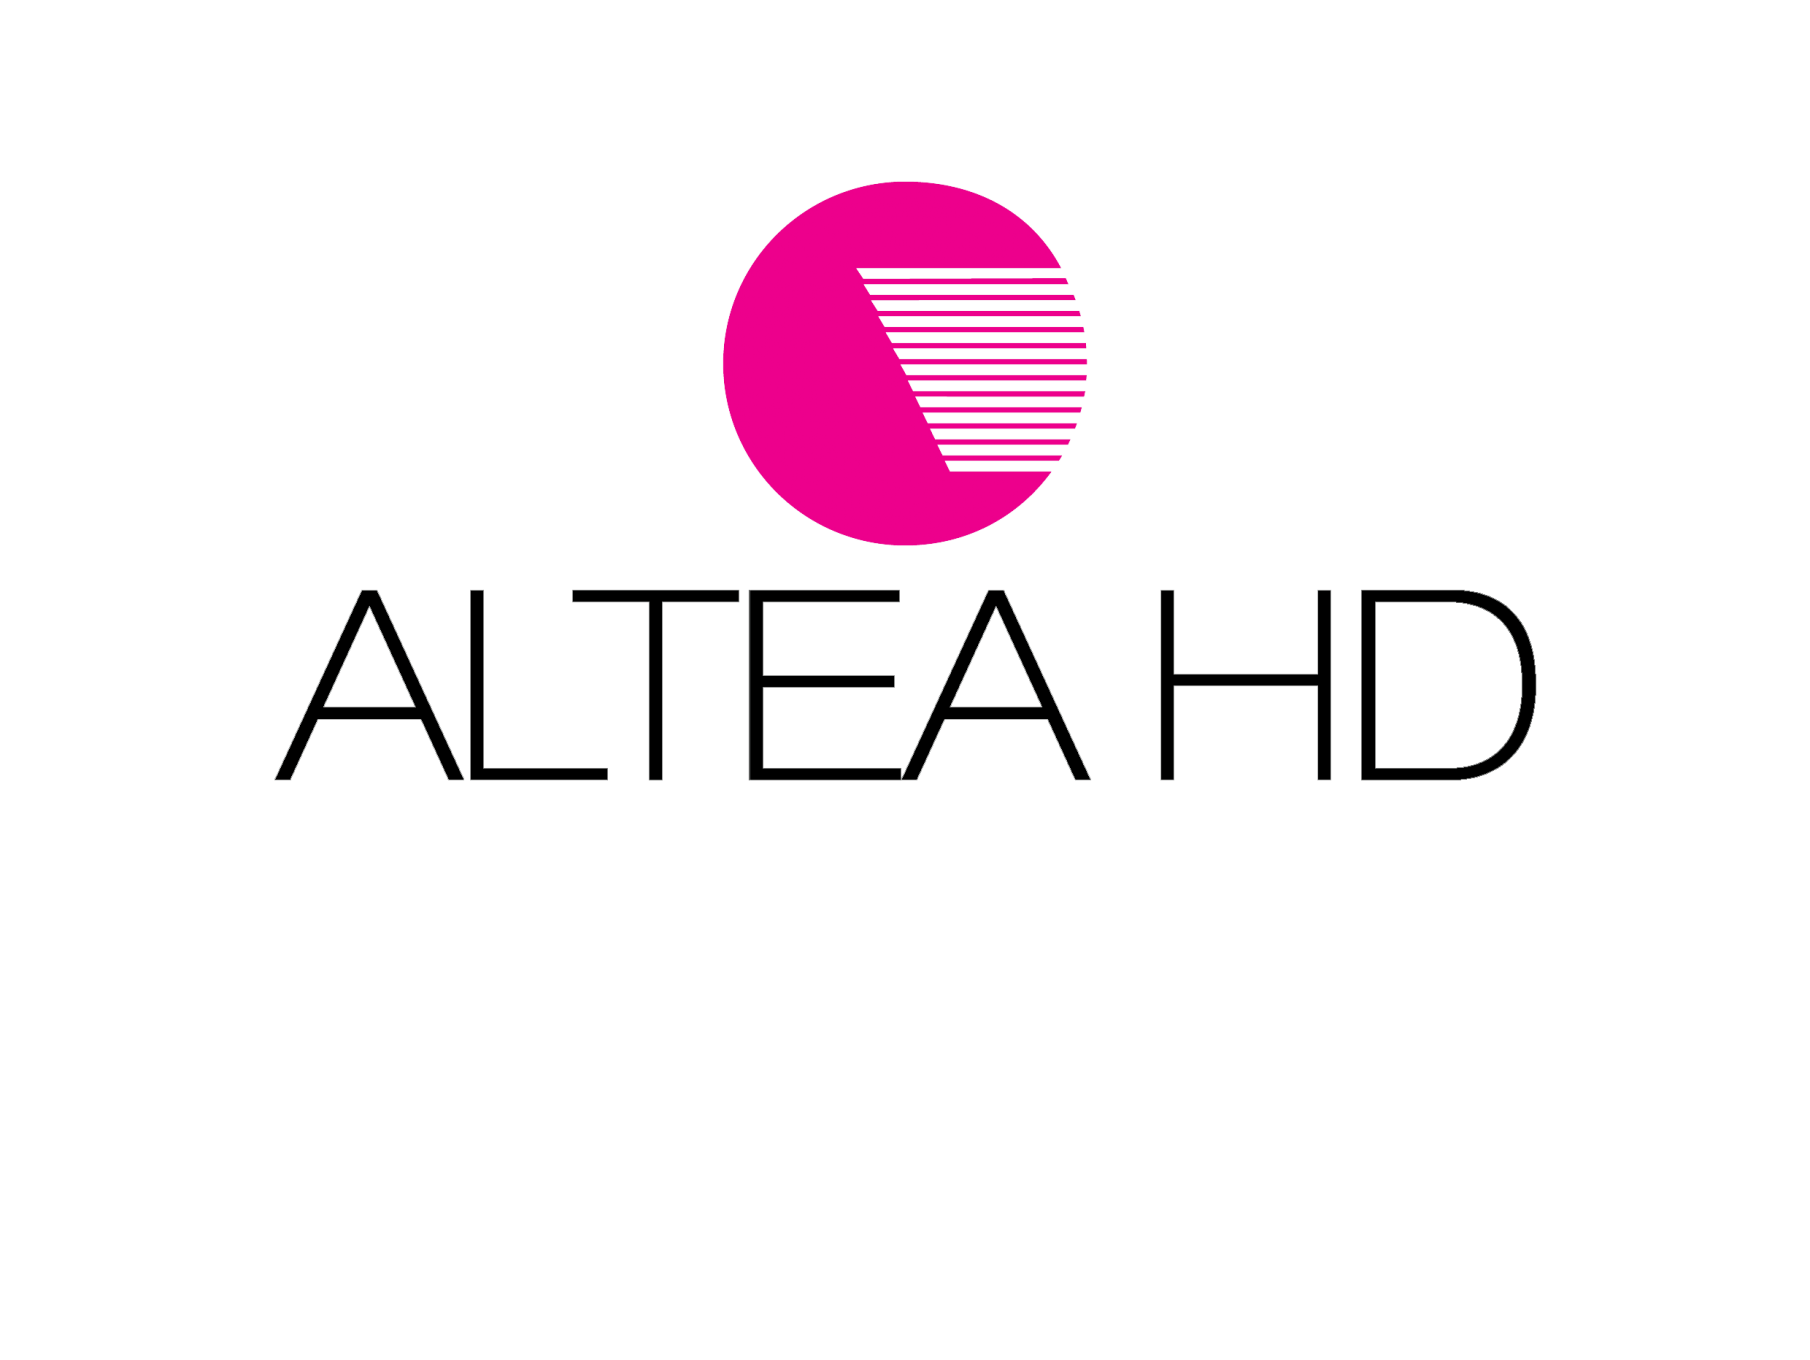 alteaHD